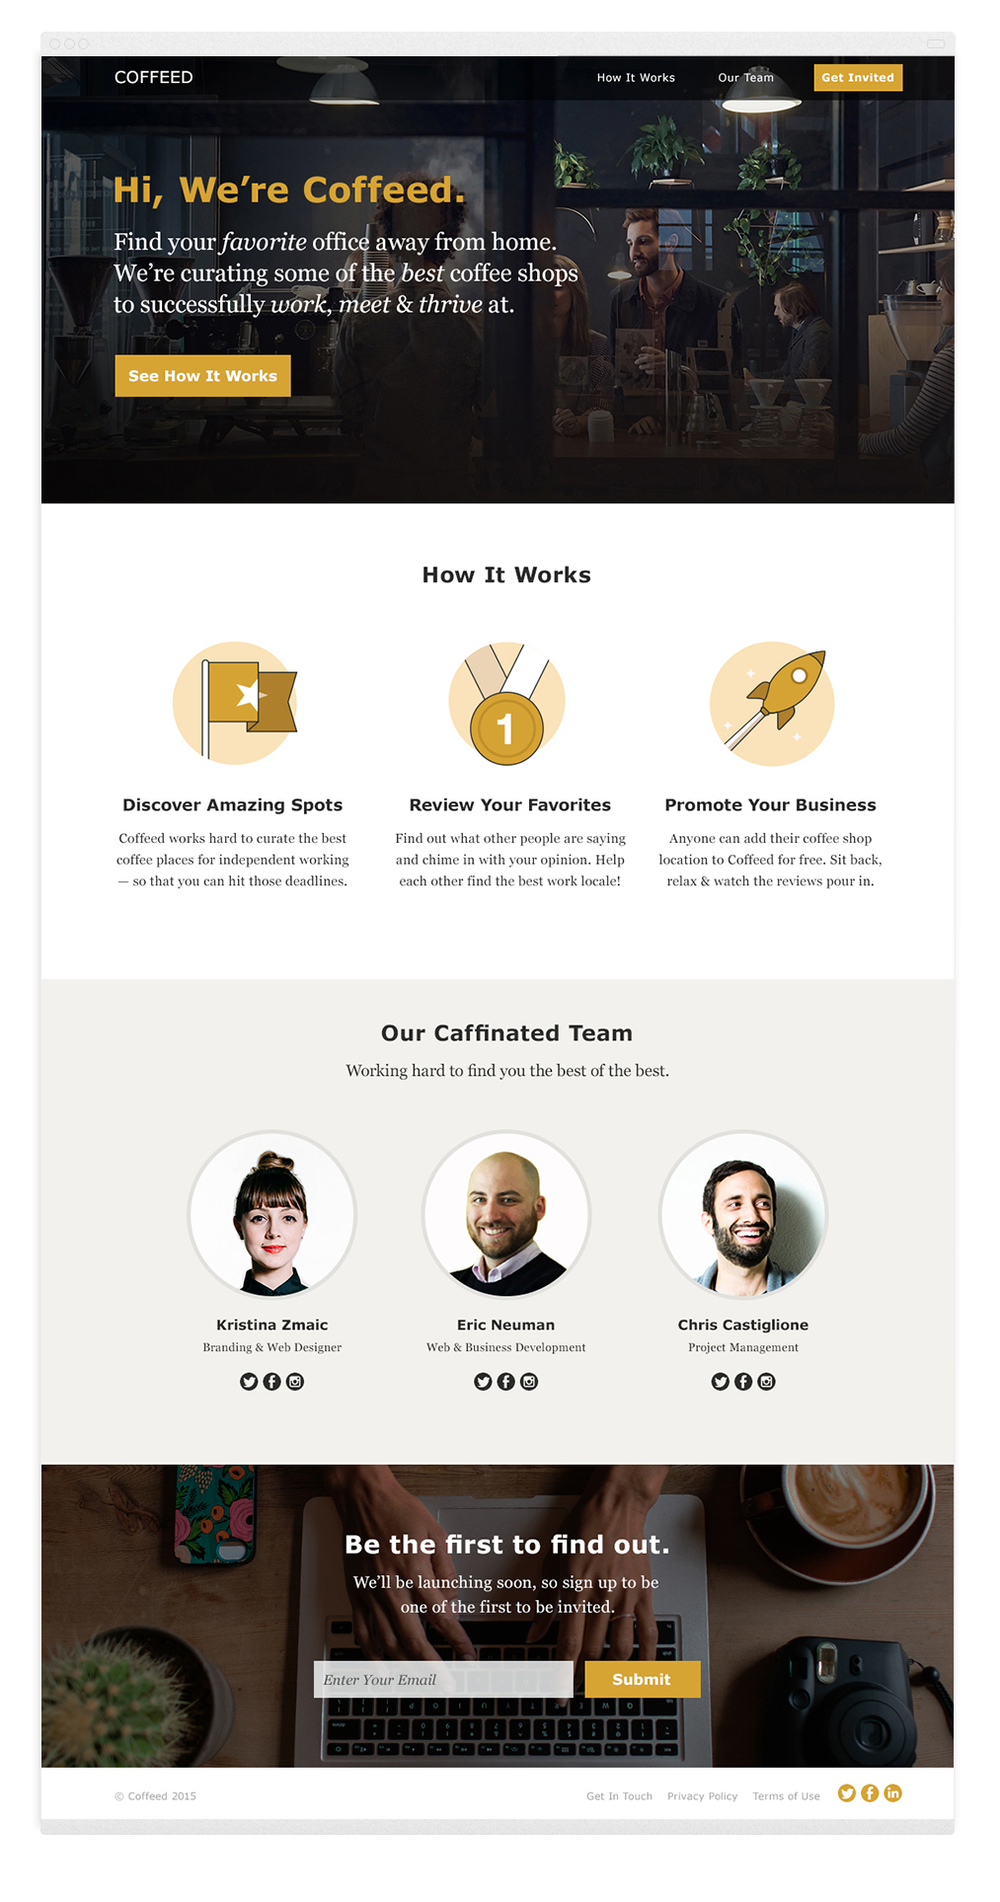 zmaic-one-month-project-landing-page.jpg